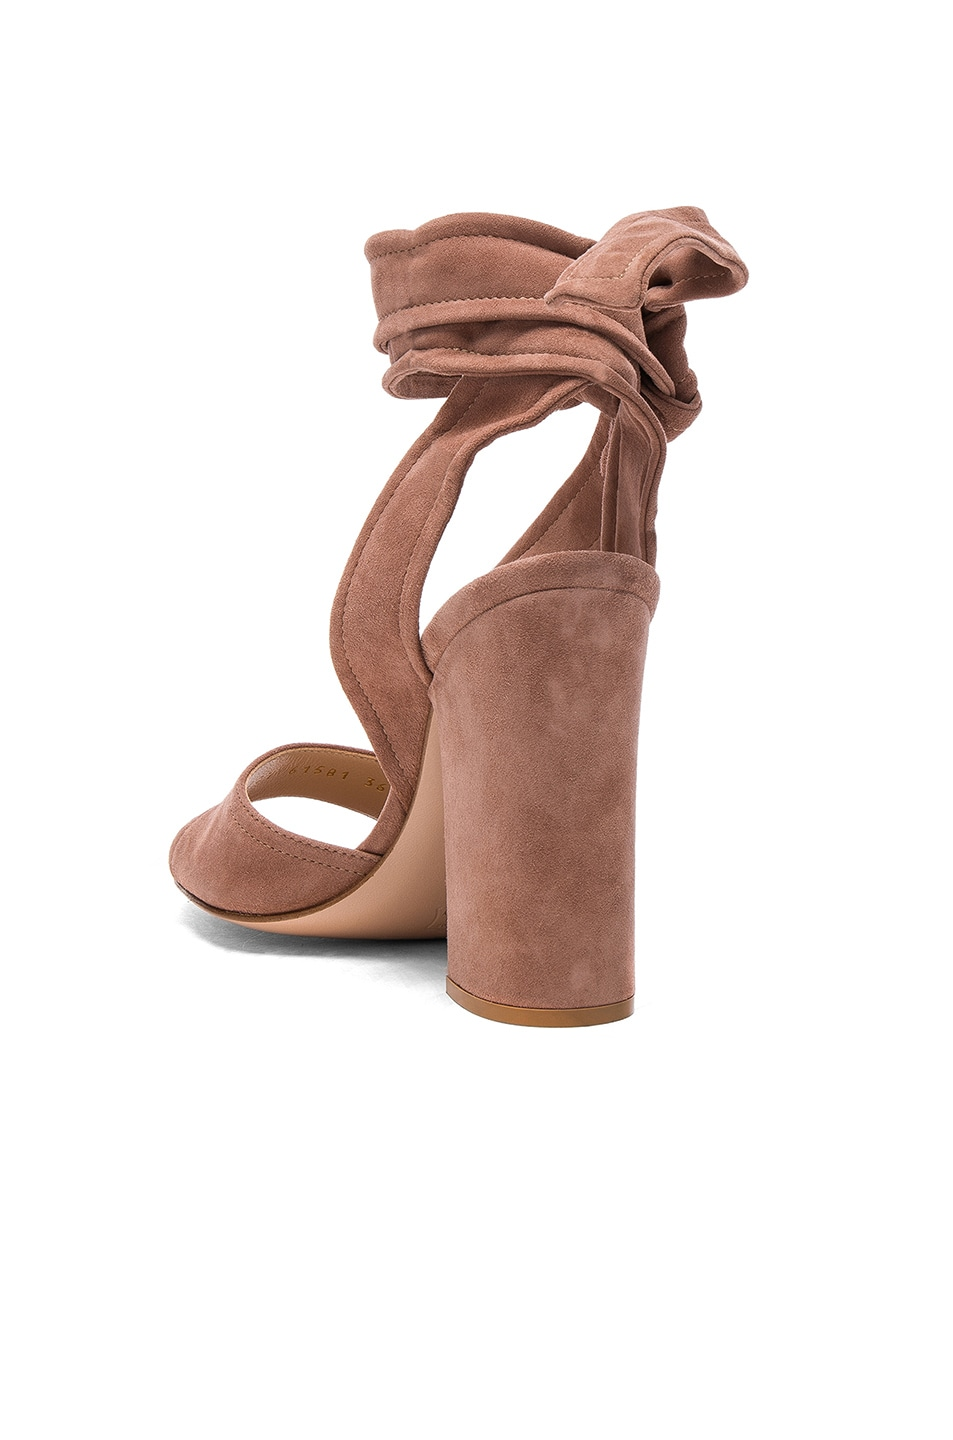 Image 3 of Gianvito Rossi Suede Ankle Tie Heels in Praline